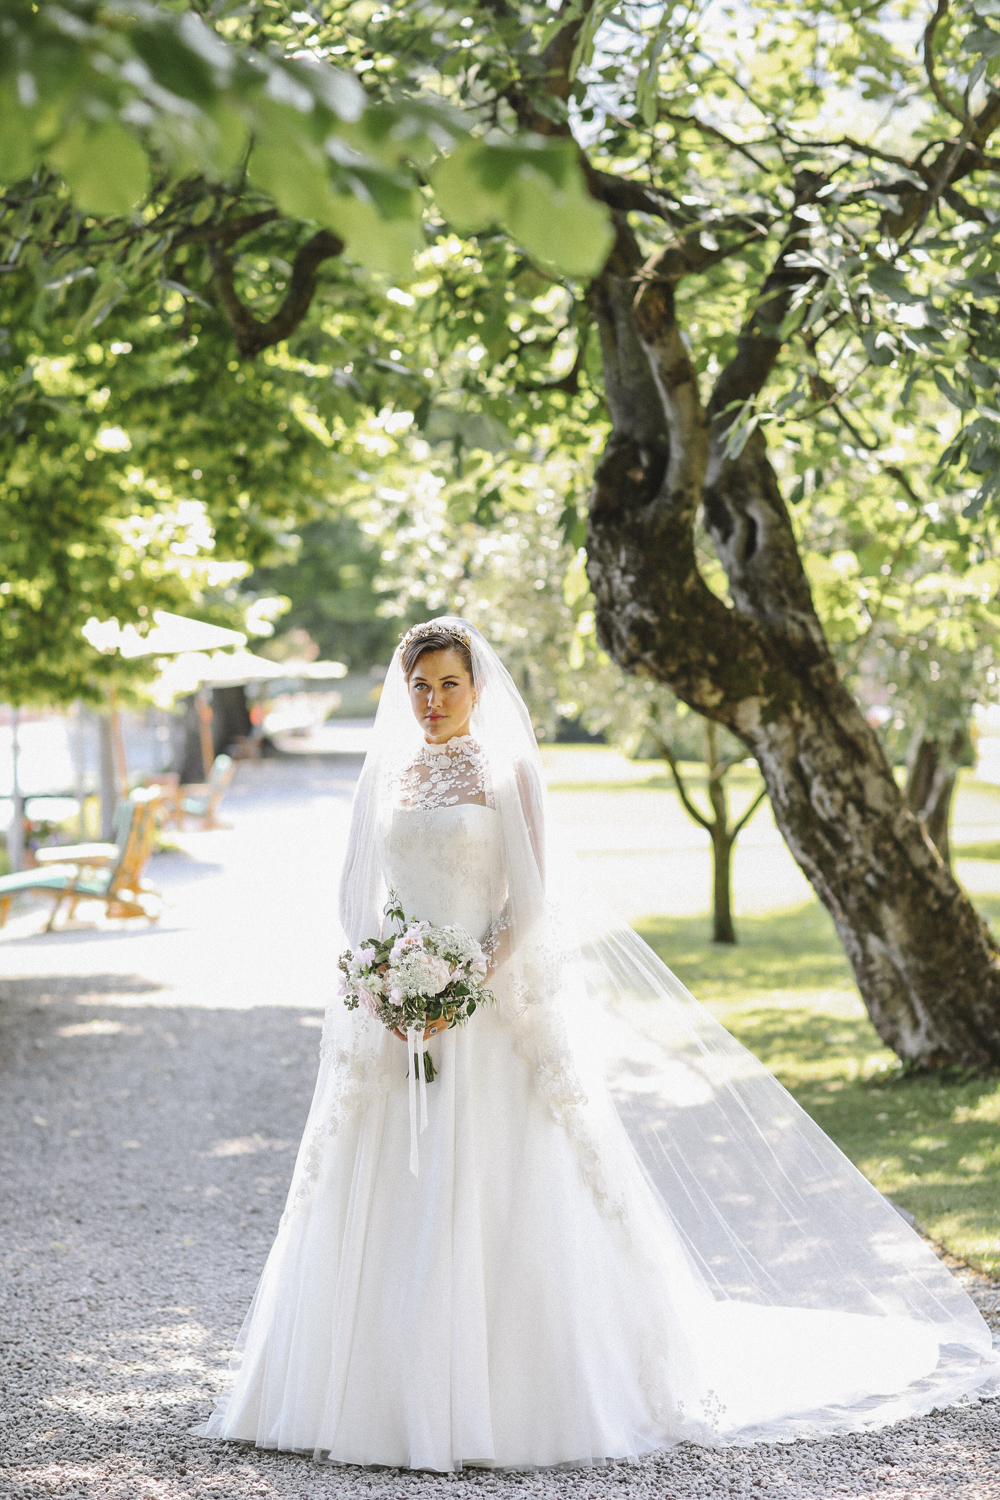 AN ITALIAN DREAM – ROSIE LONDONER'S LAKE GARDA WEDDING